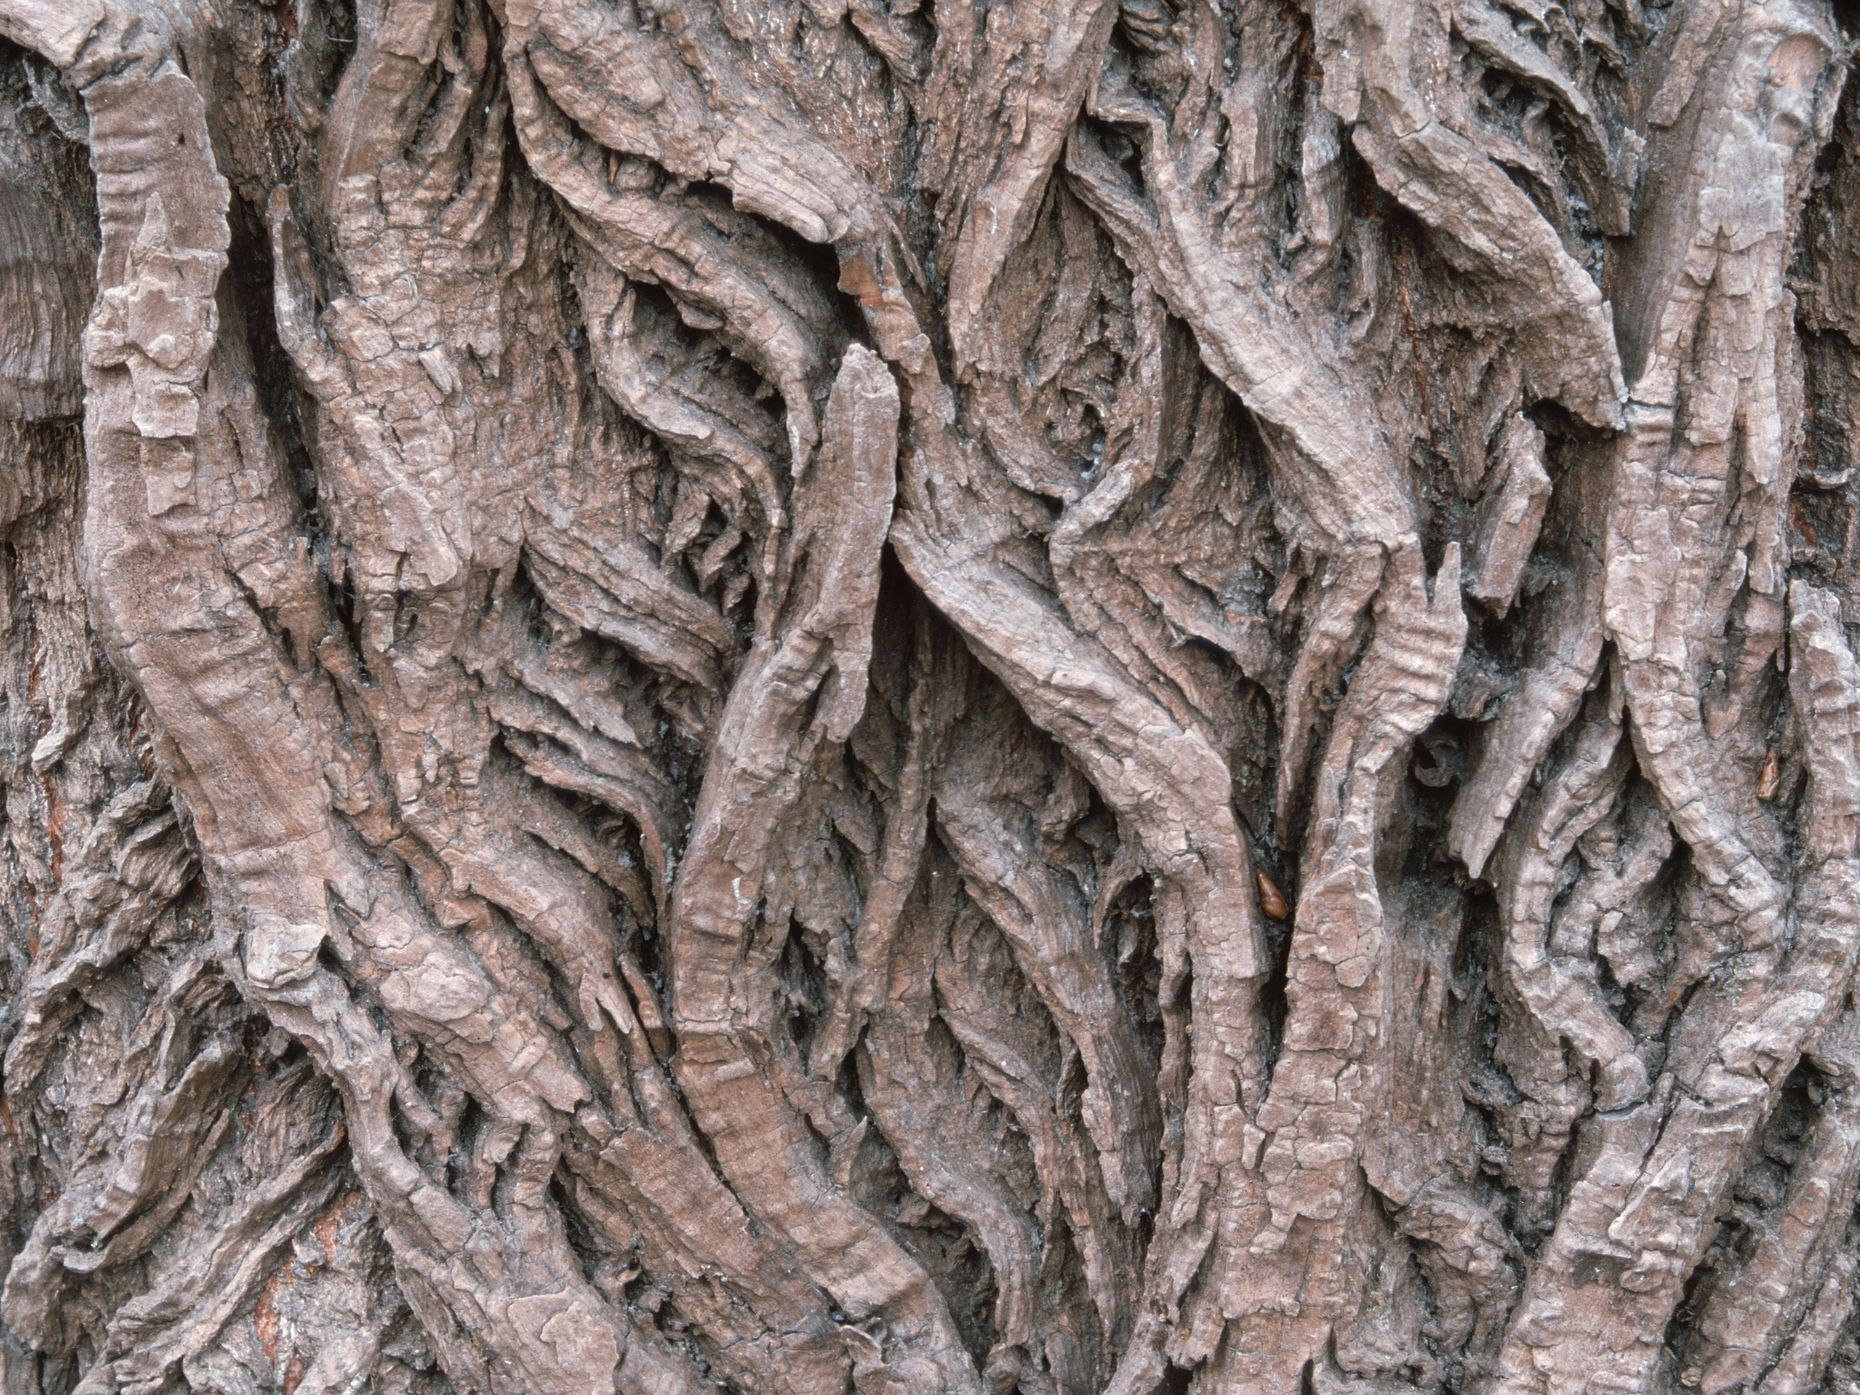 The bark of the willow tree